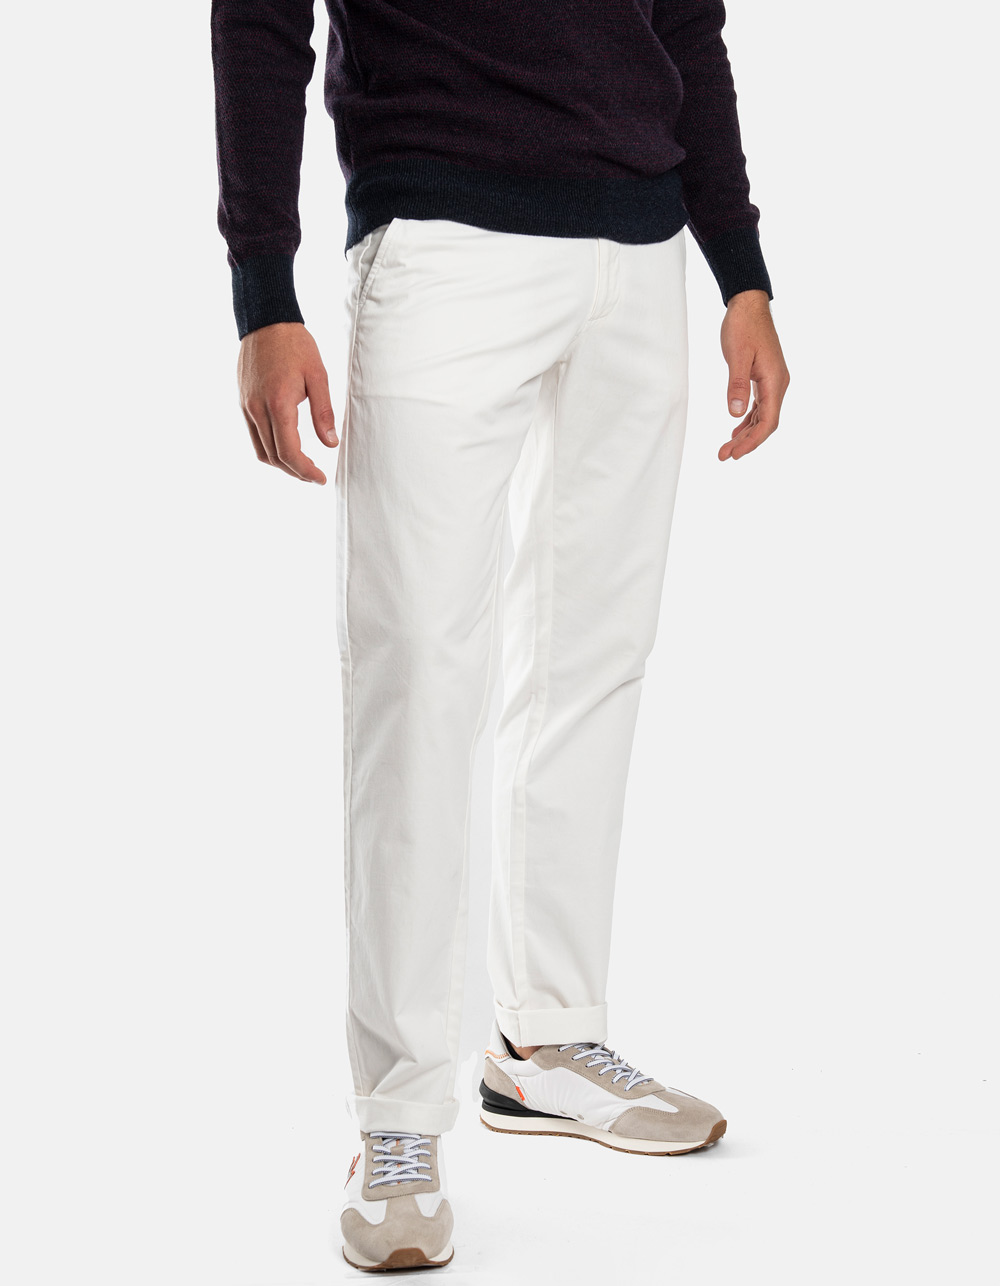 White chino trousers